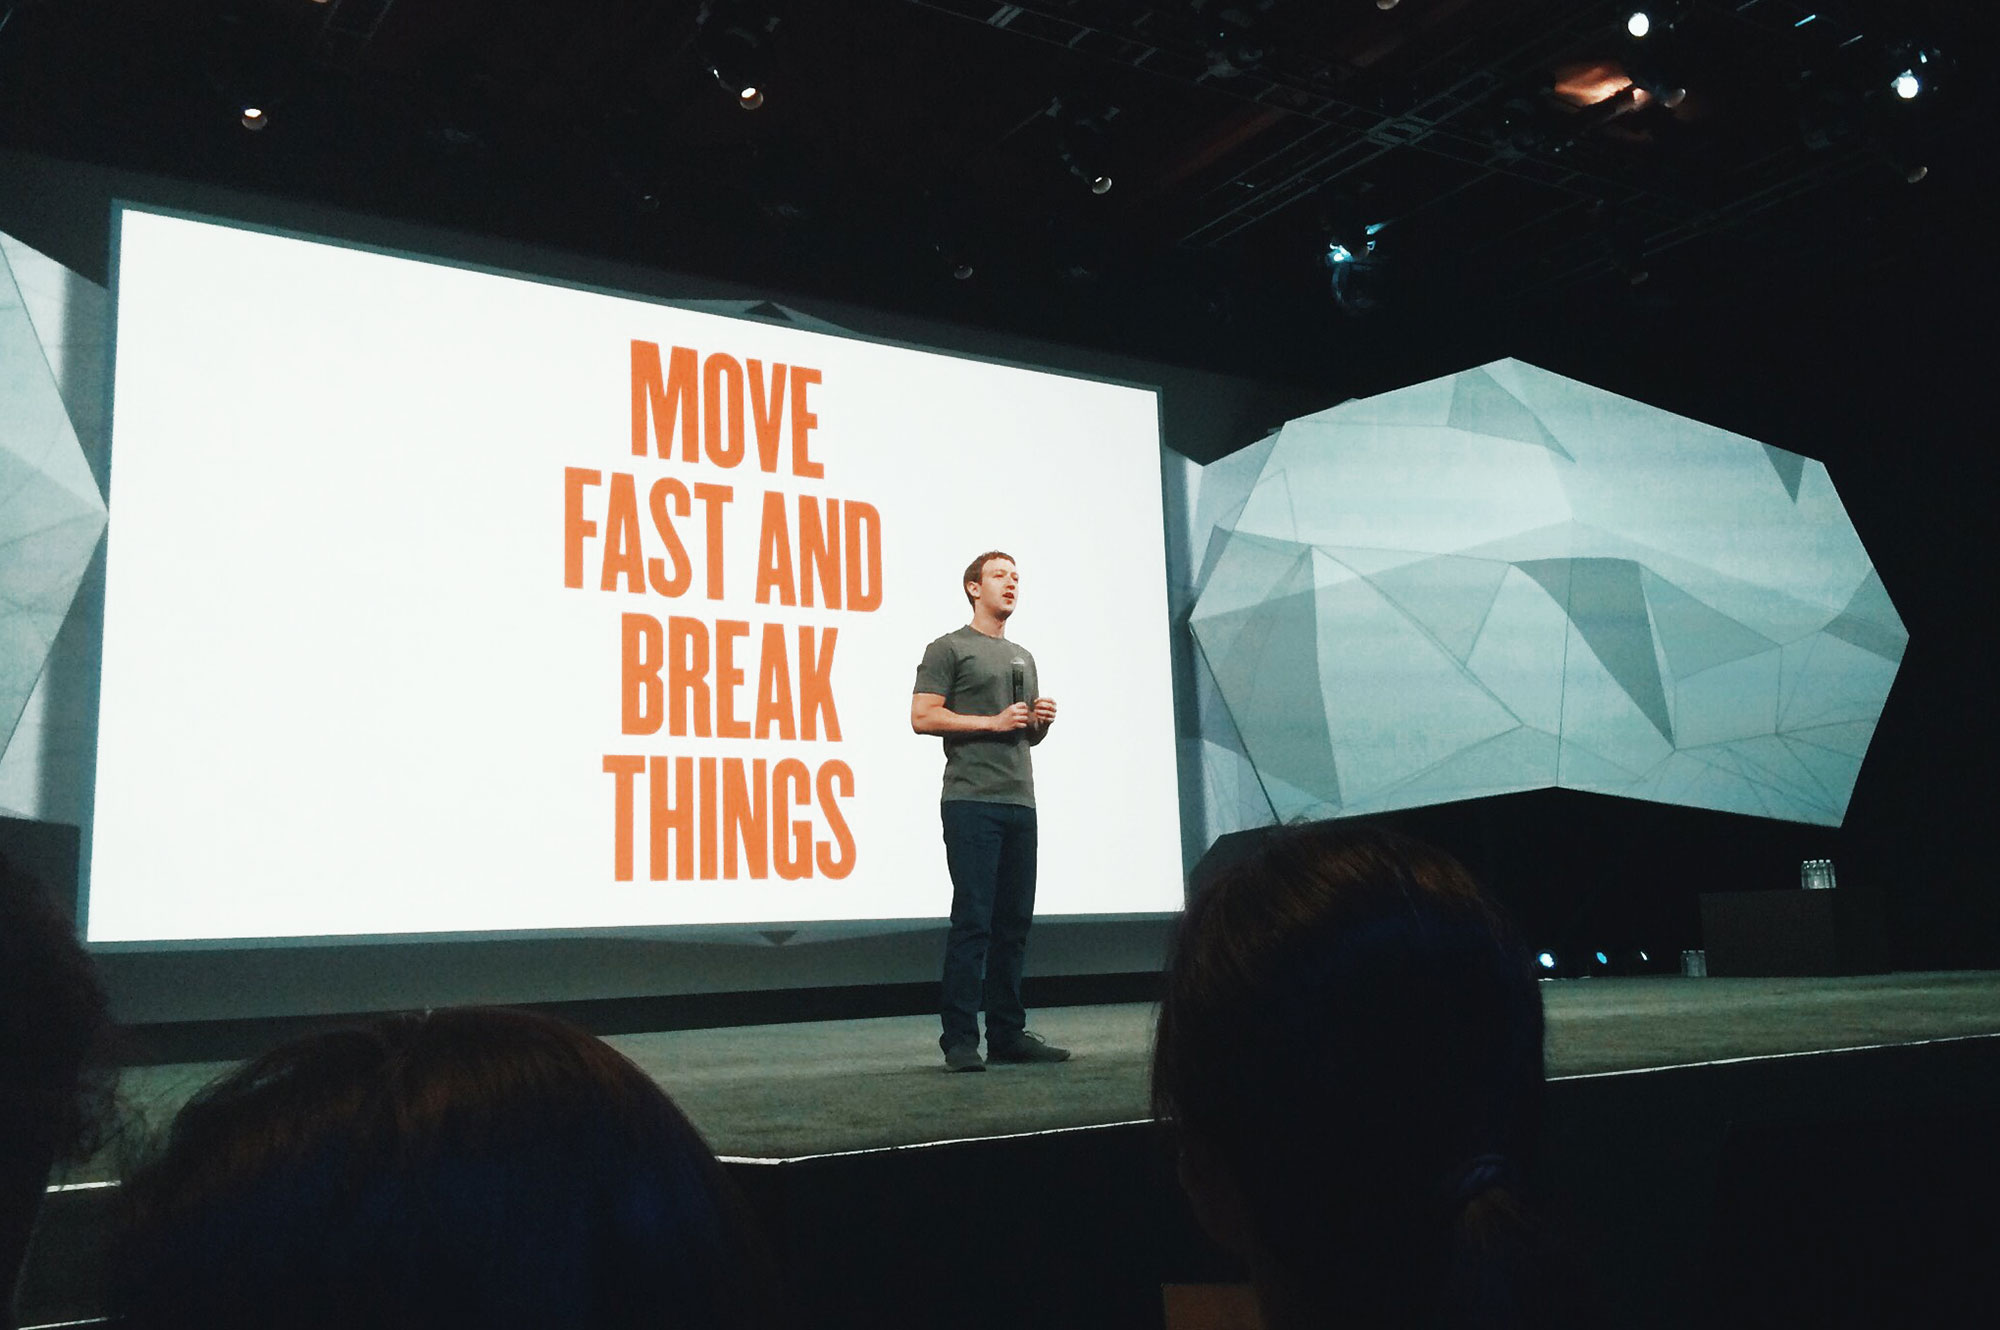 a white man stands in front of a large screen that says move fast and break things in orange